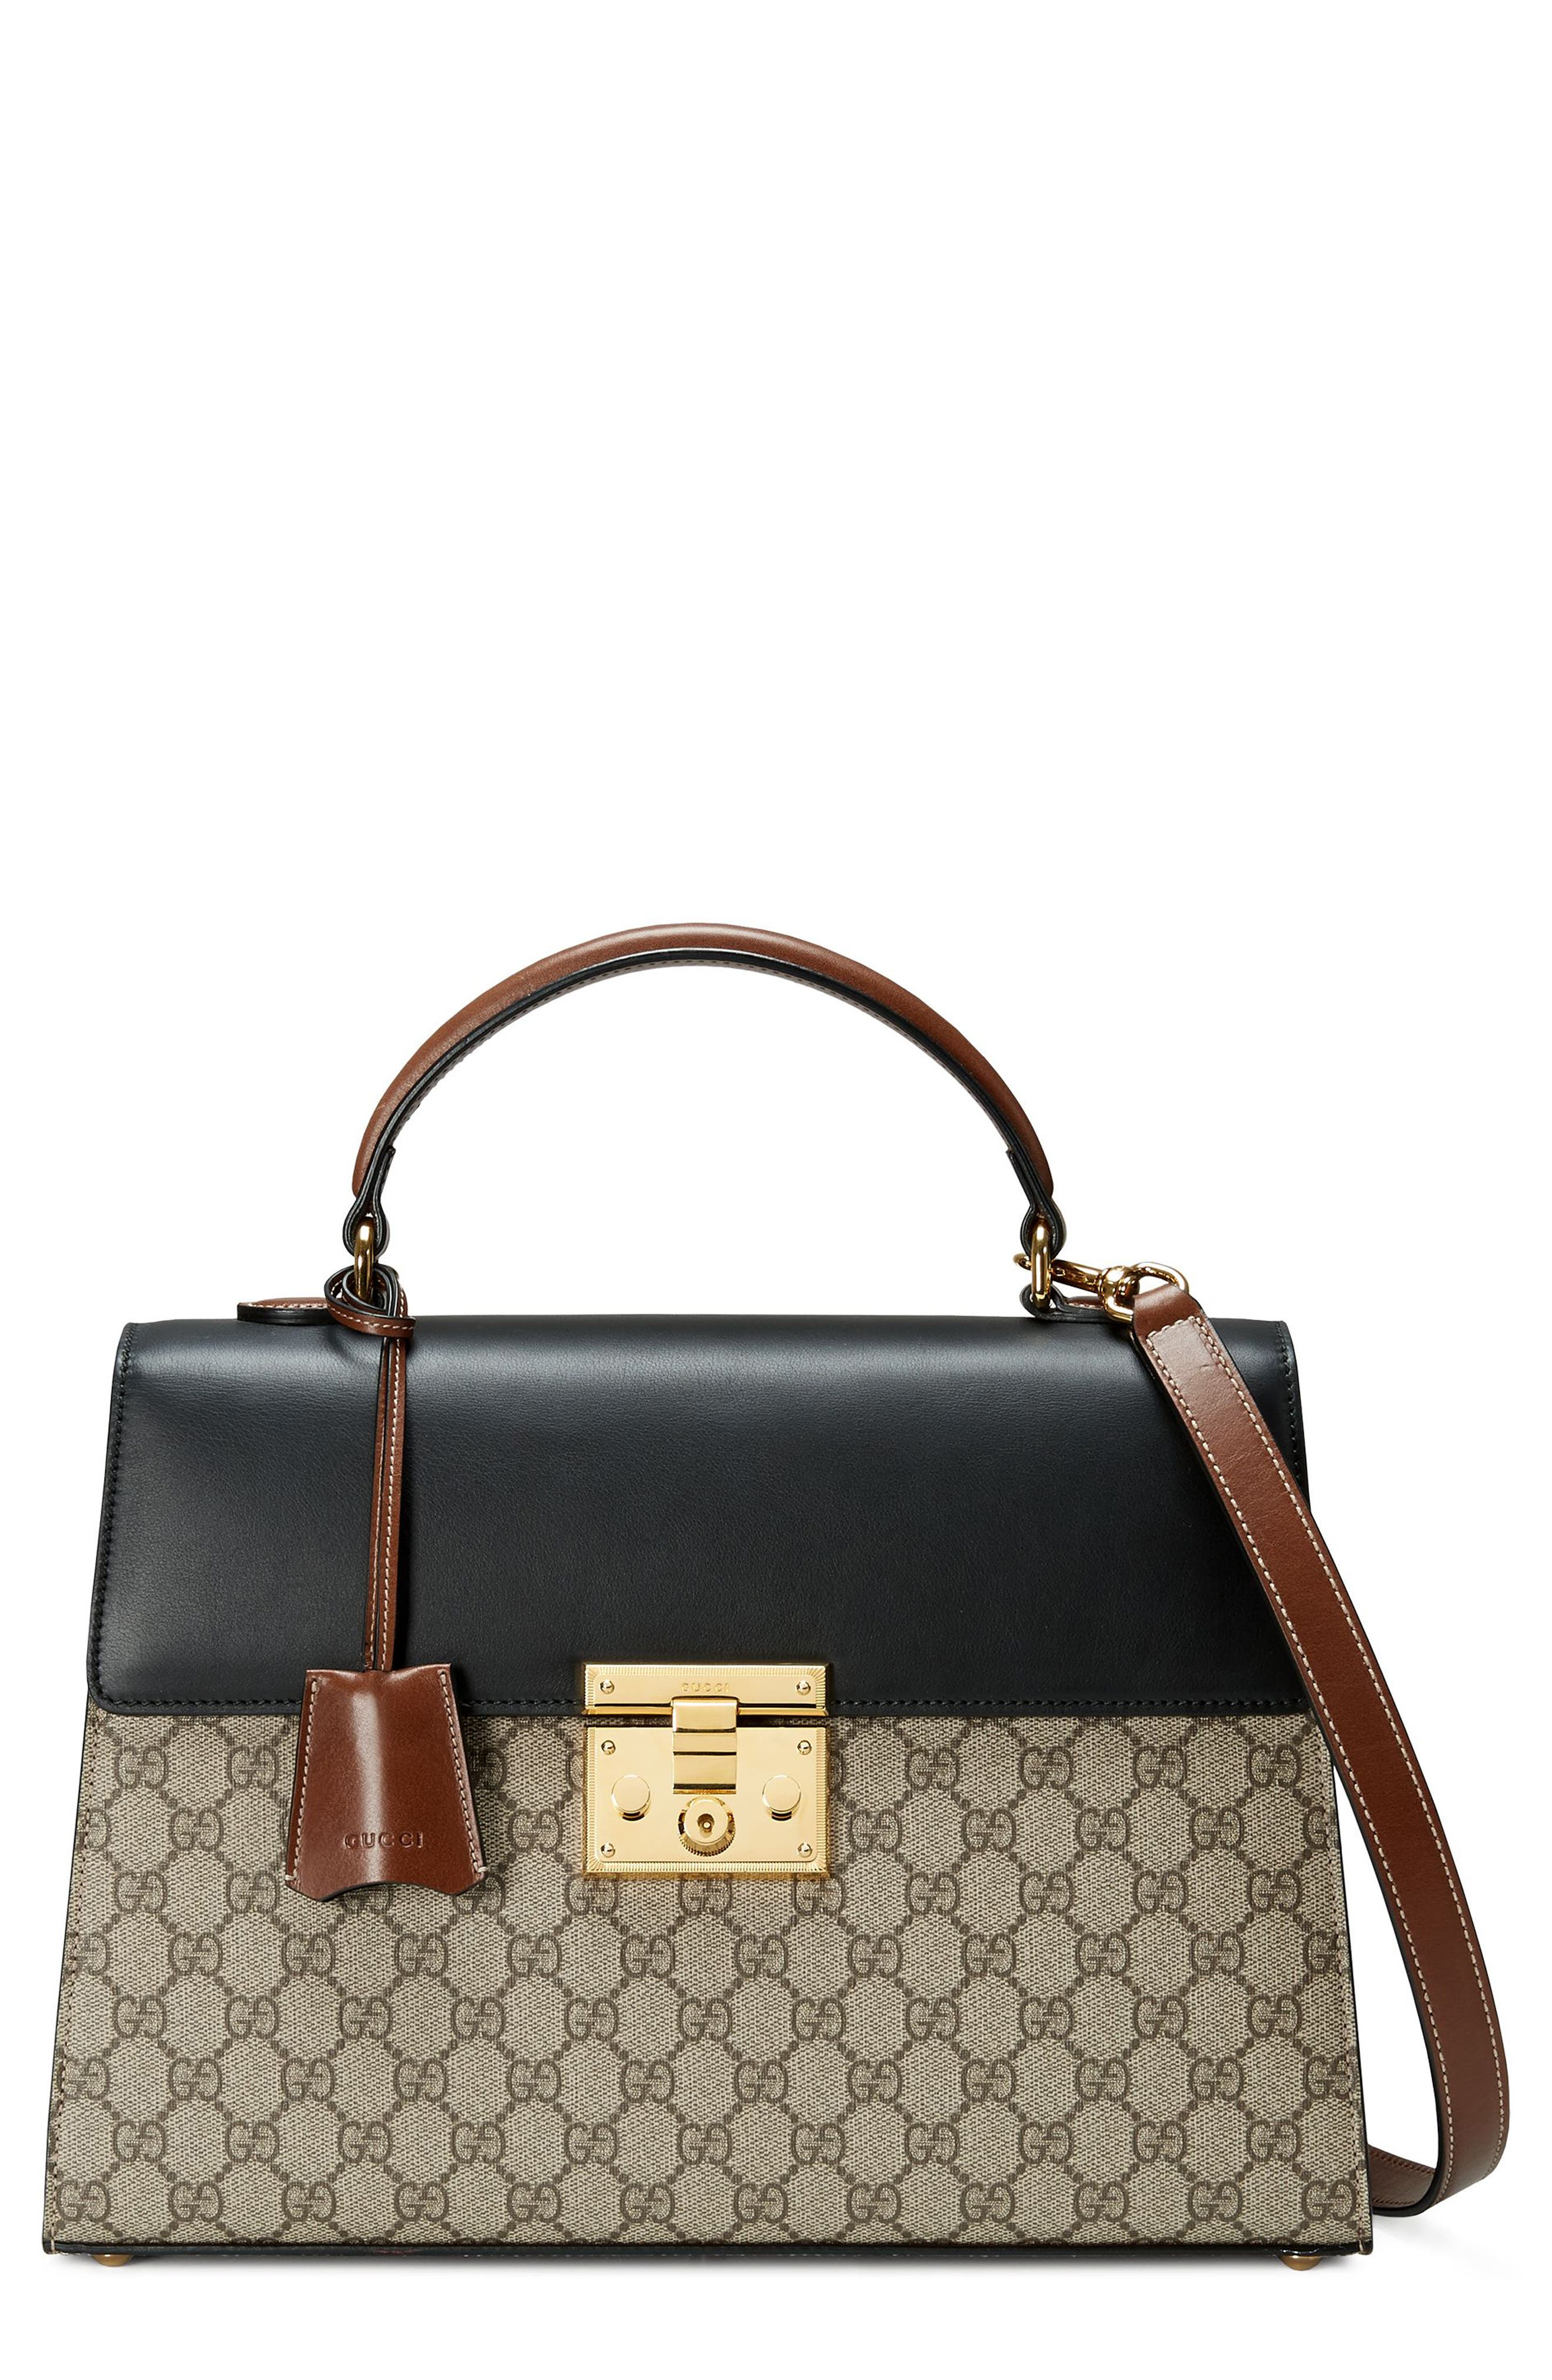 Medium Padlock Top Handle GG Supreme Canvas & Leather Bag,                             Main thumbnail 1, color,                             Beige Ebony/Nero/Cuir